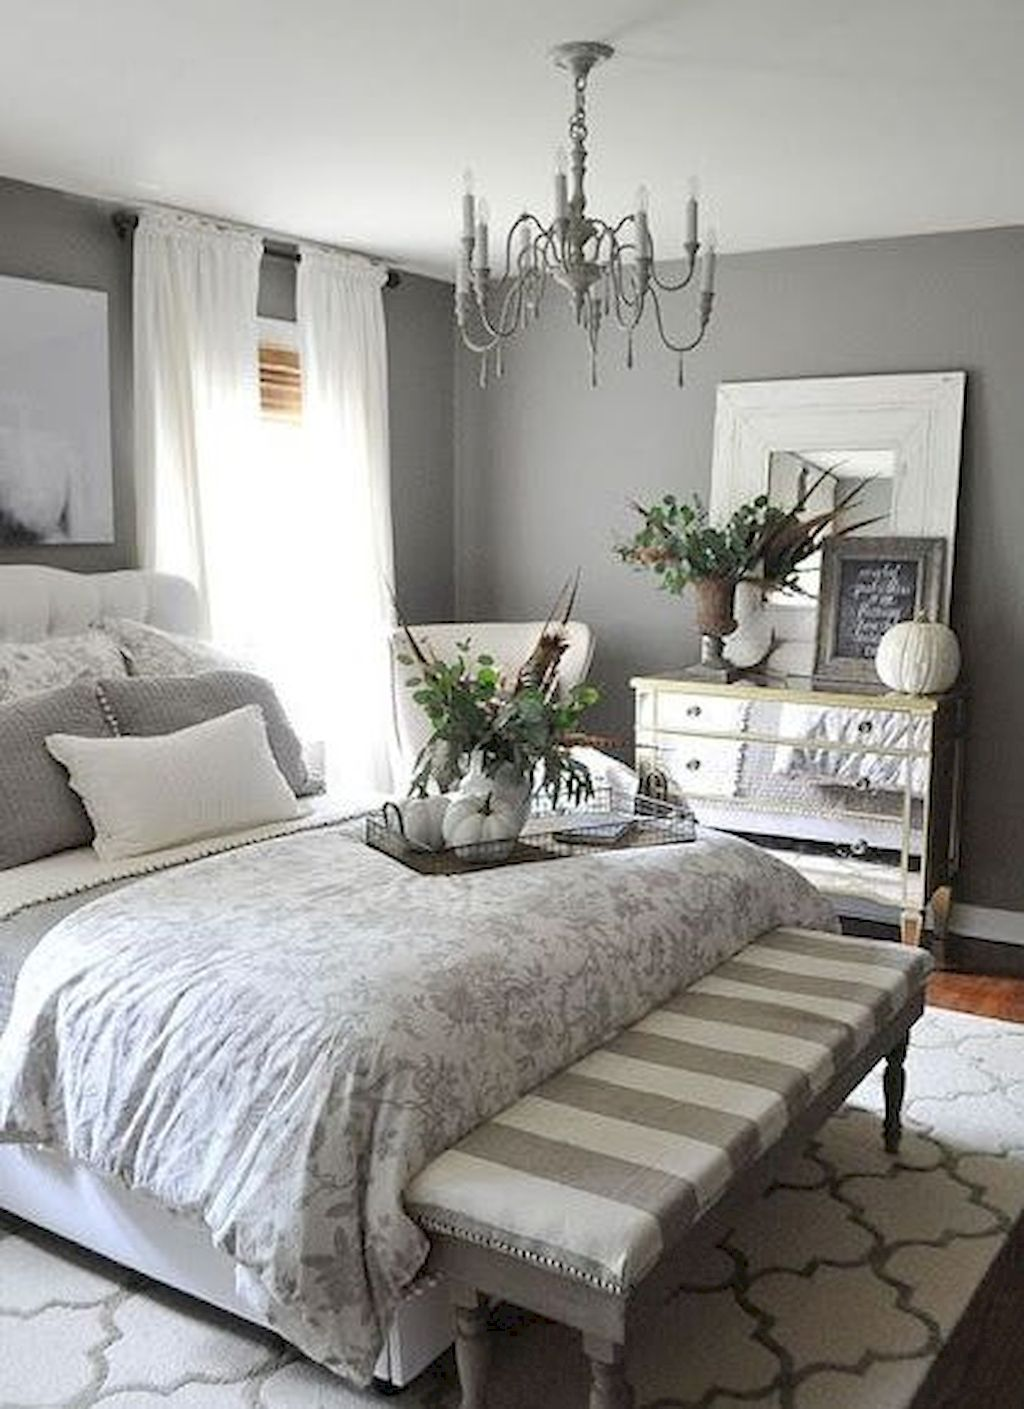 Best 35 Farmhouse Master Bedroom Decorating Ideas Small 400 x 300